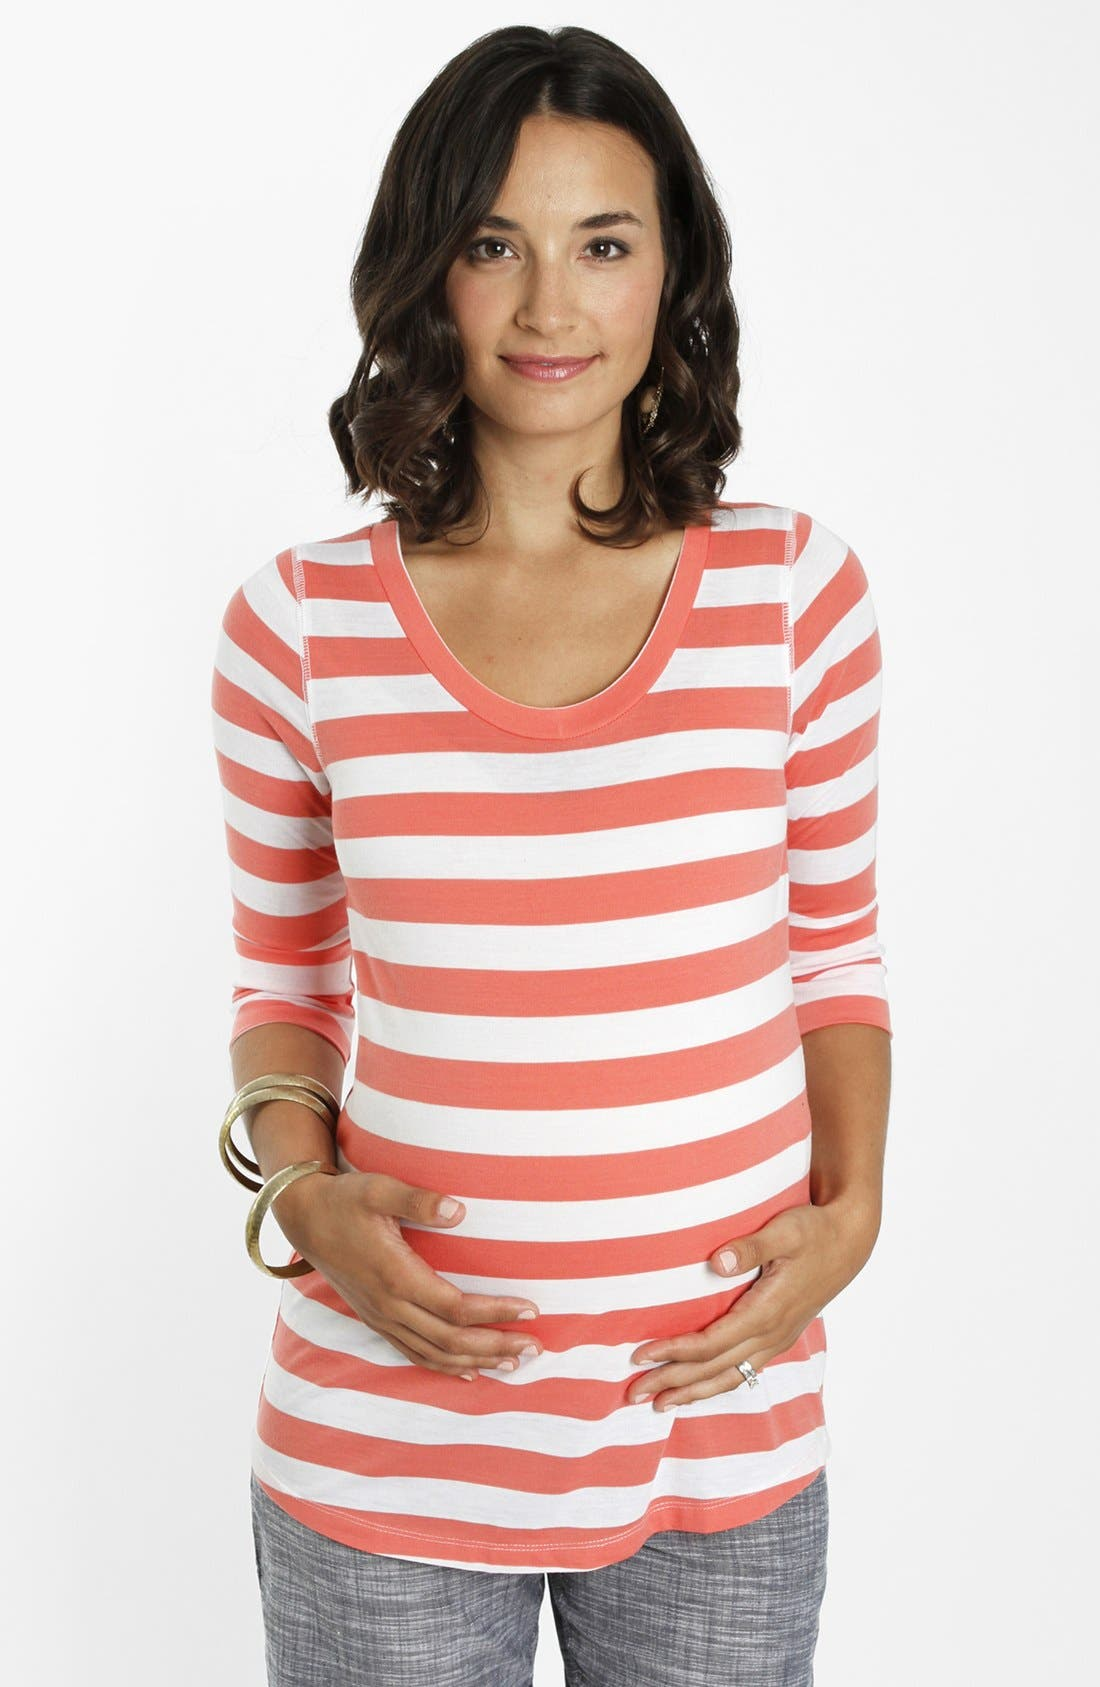 Alternate Image 1 Selected - Everly Grey 'Sarina' Maternity Tee